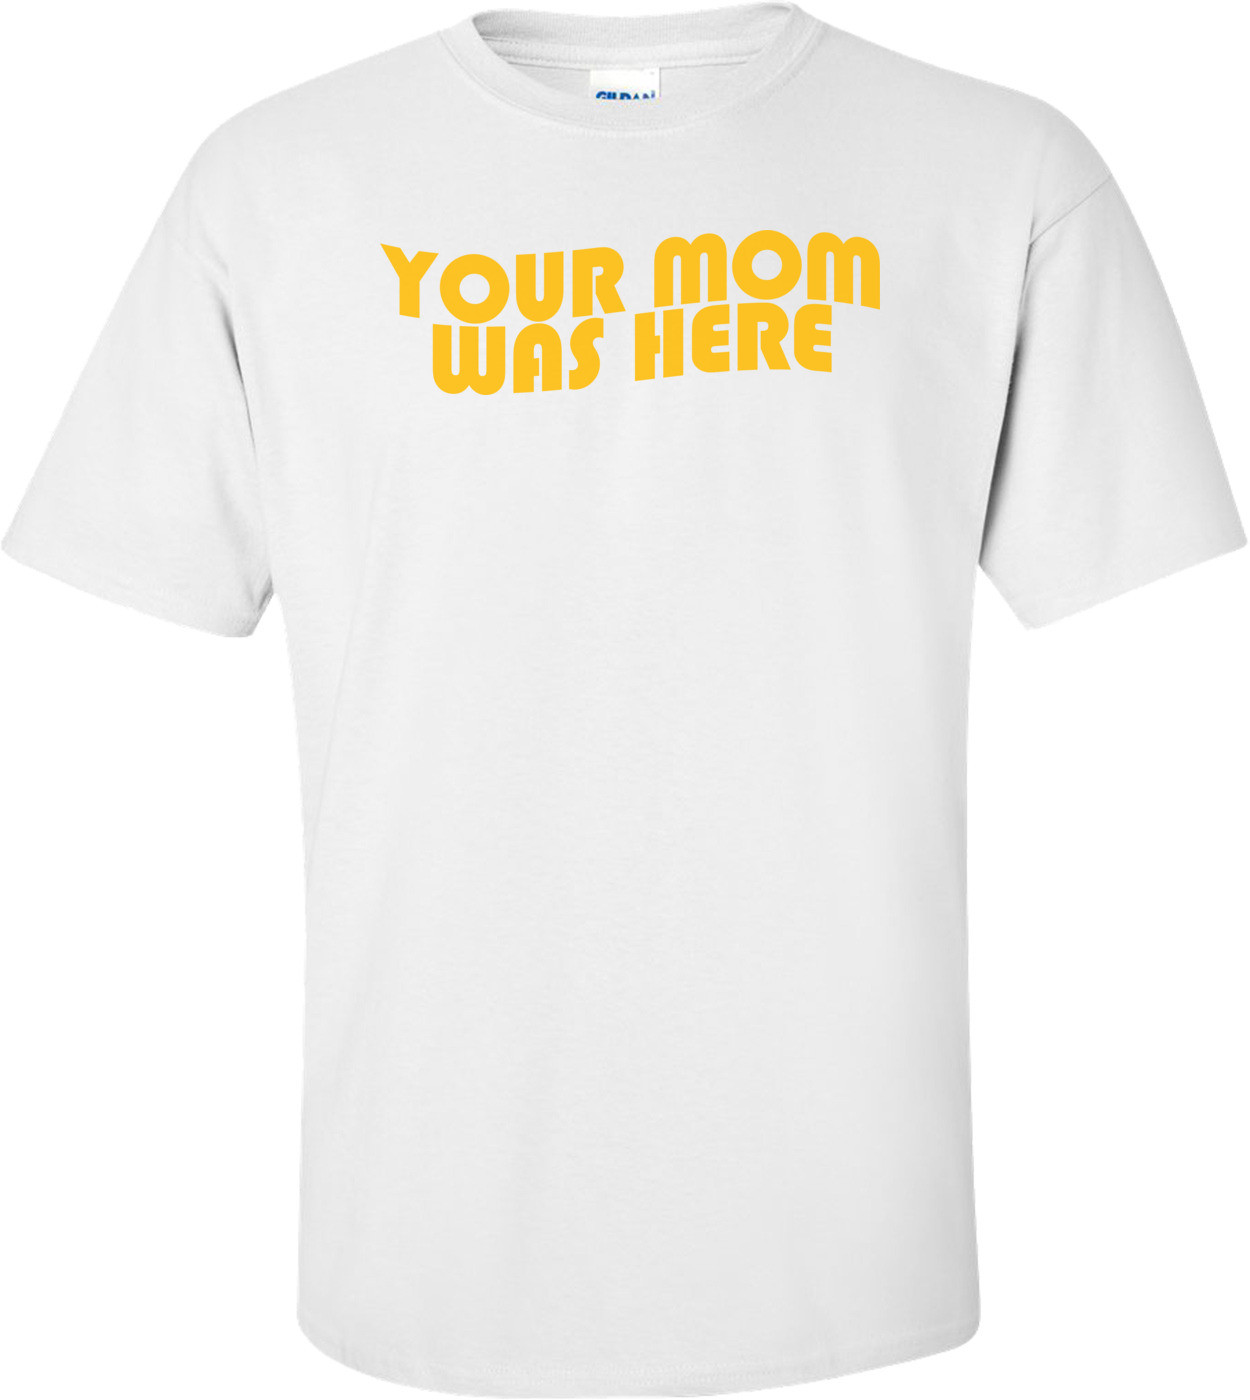 Your Mom Was Here Shirt